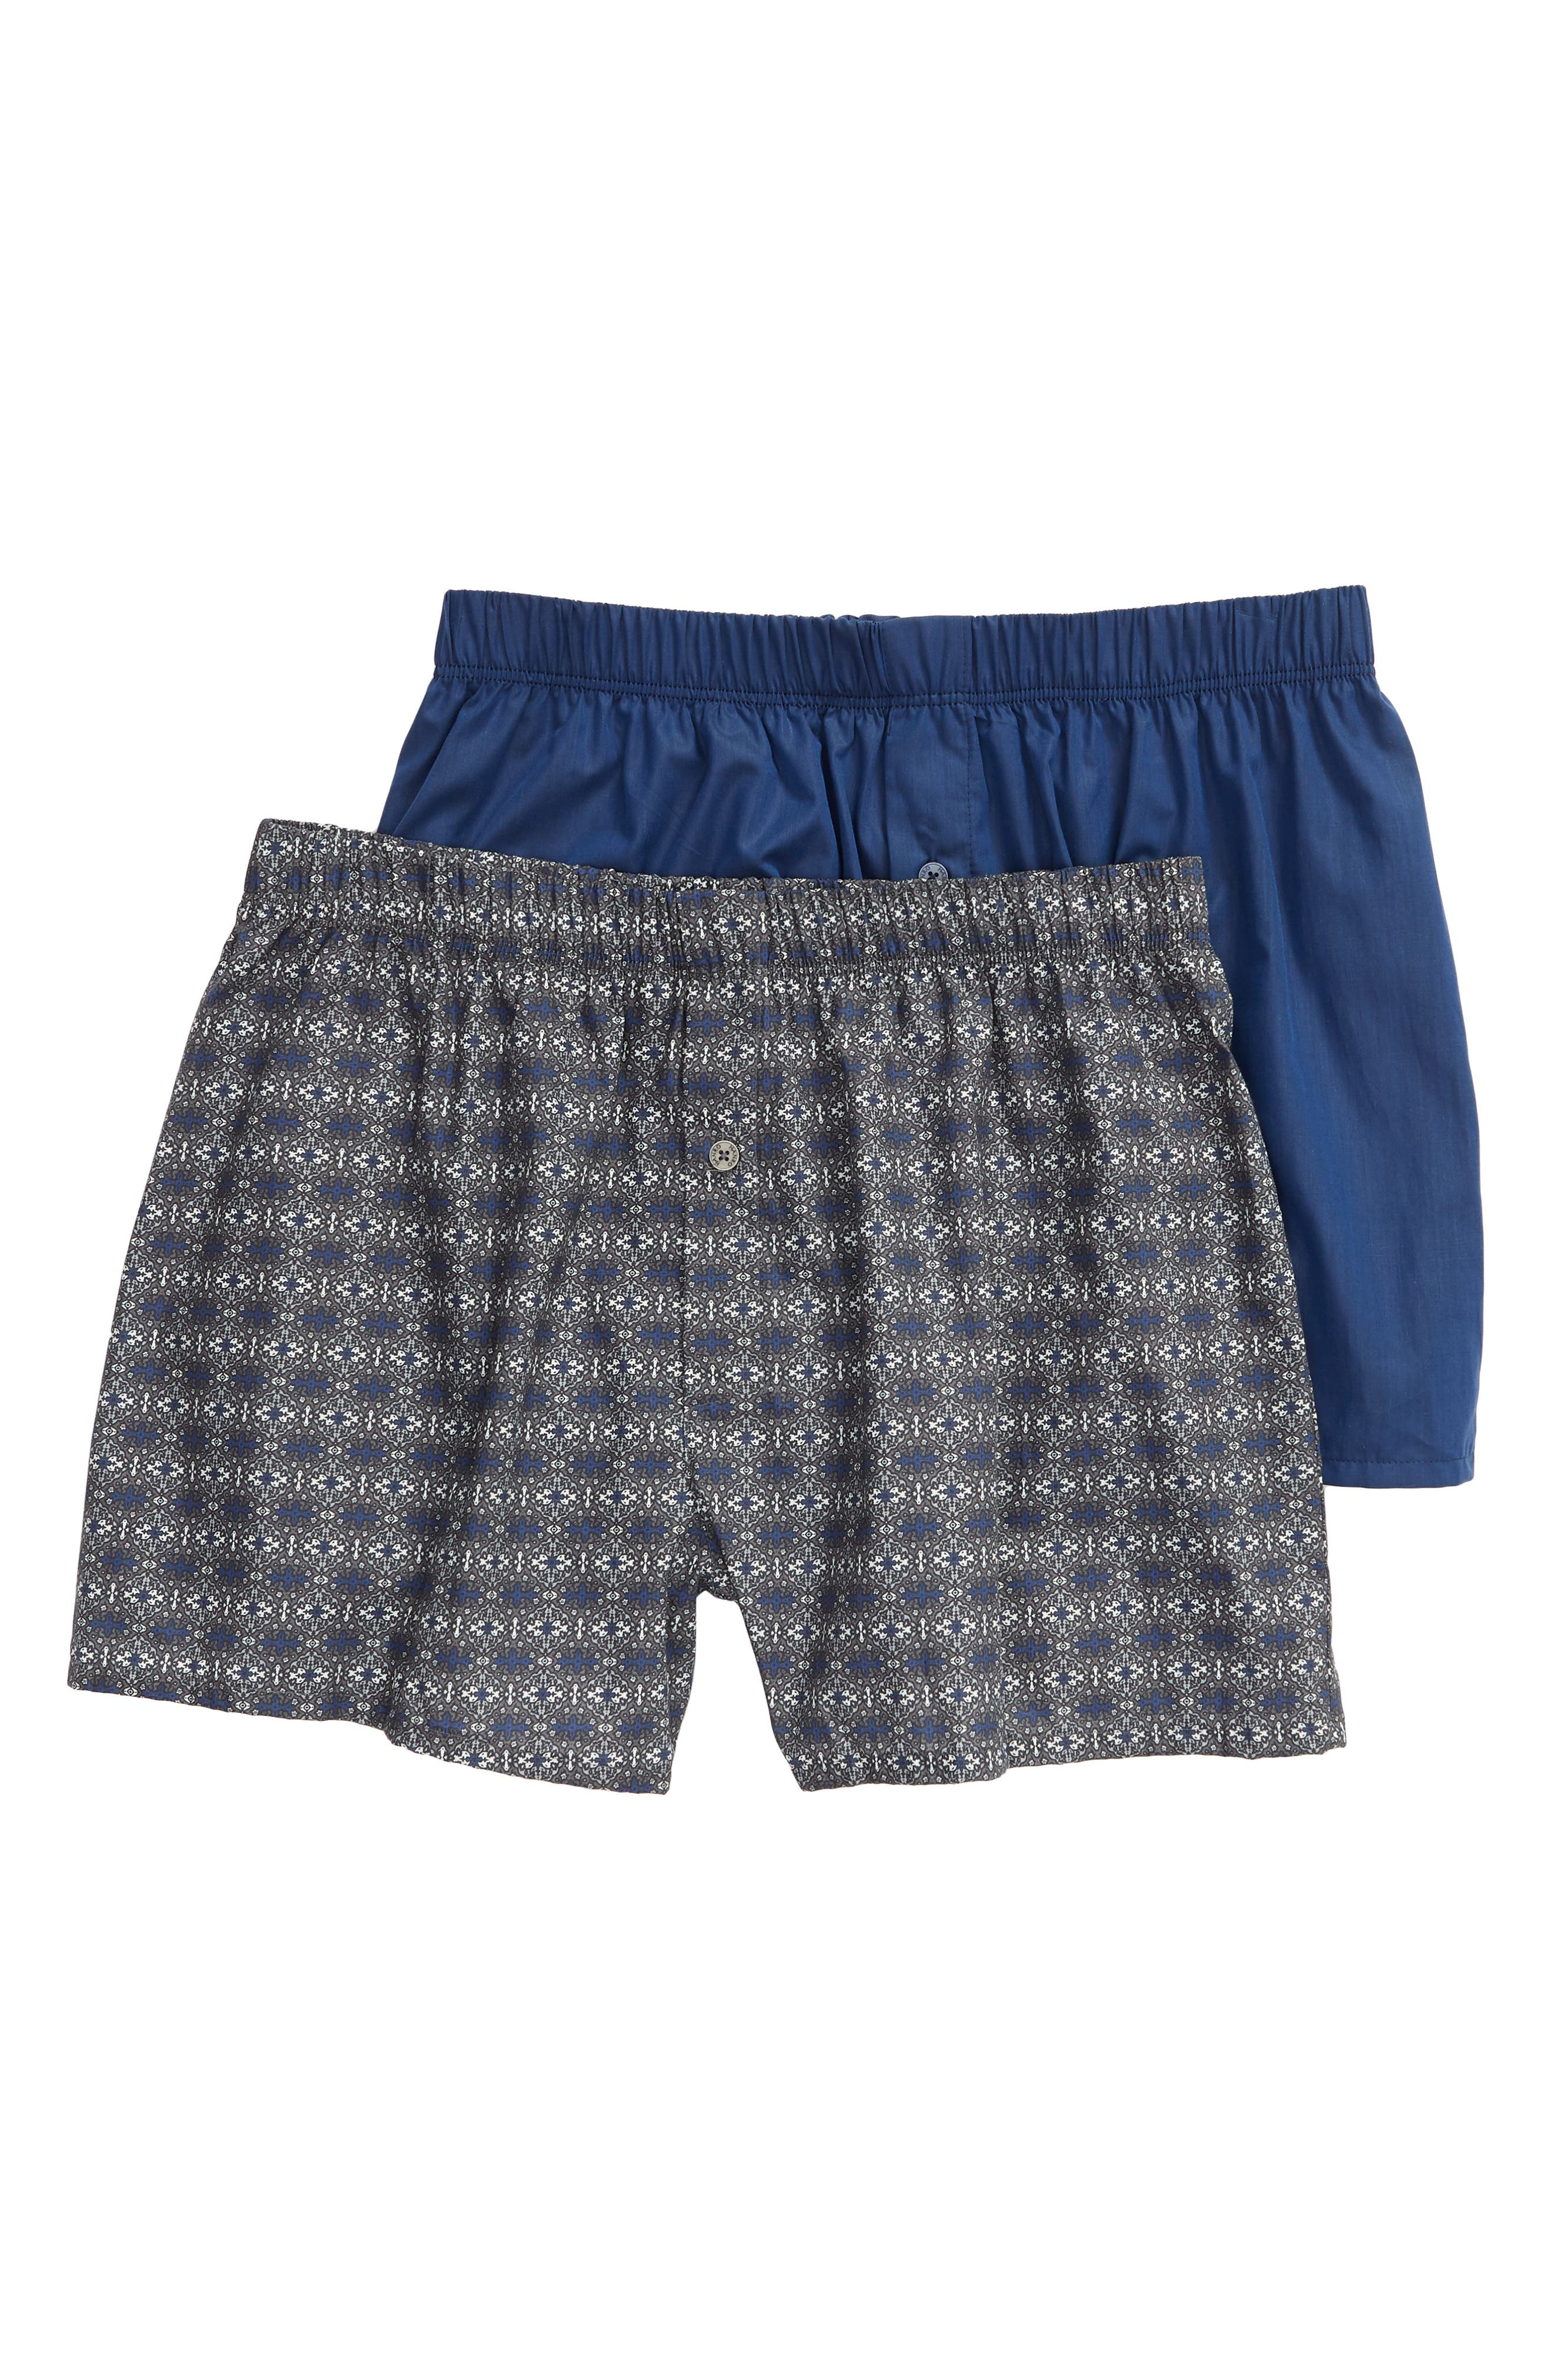 2-Pack Fancy Woven Boxers,                             Main thumbnail 1, color,                             MINIMAL ORNAMENT/ ROYAL BLUE